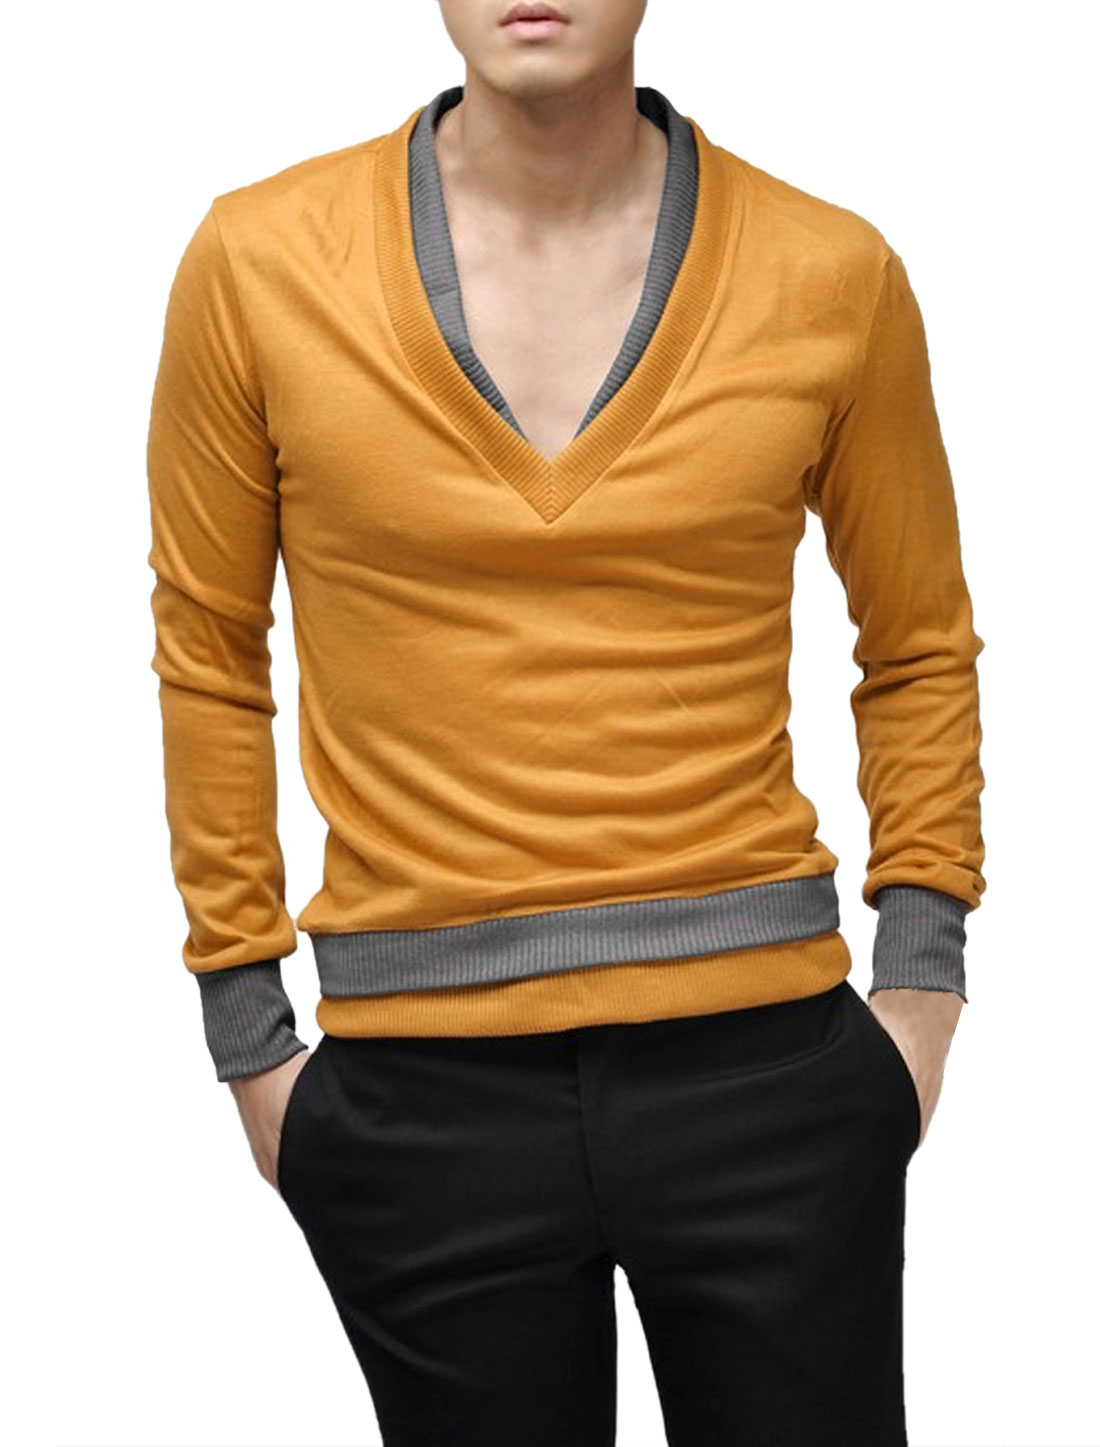 Men Slipover Double Layered V Neck Stretch Top Dark Yellow L